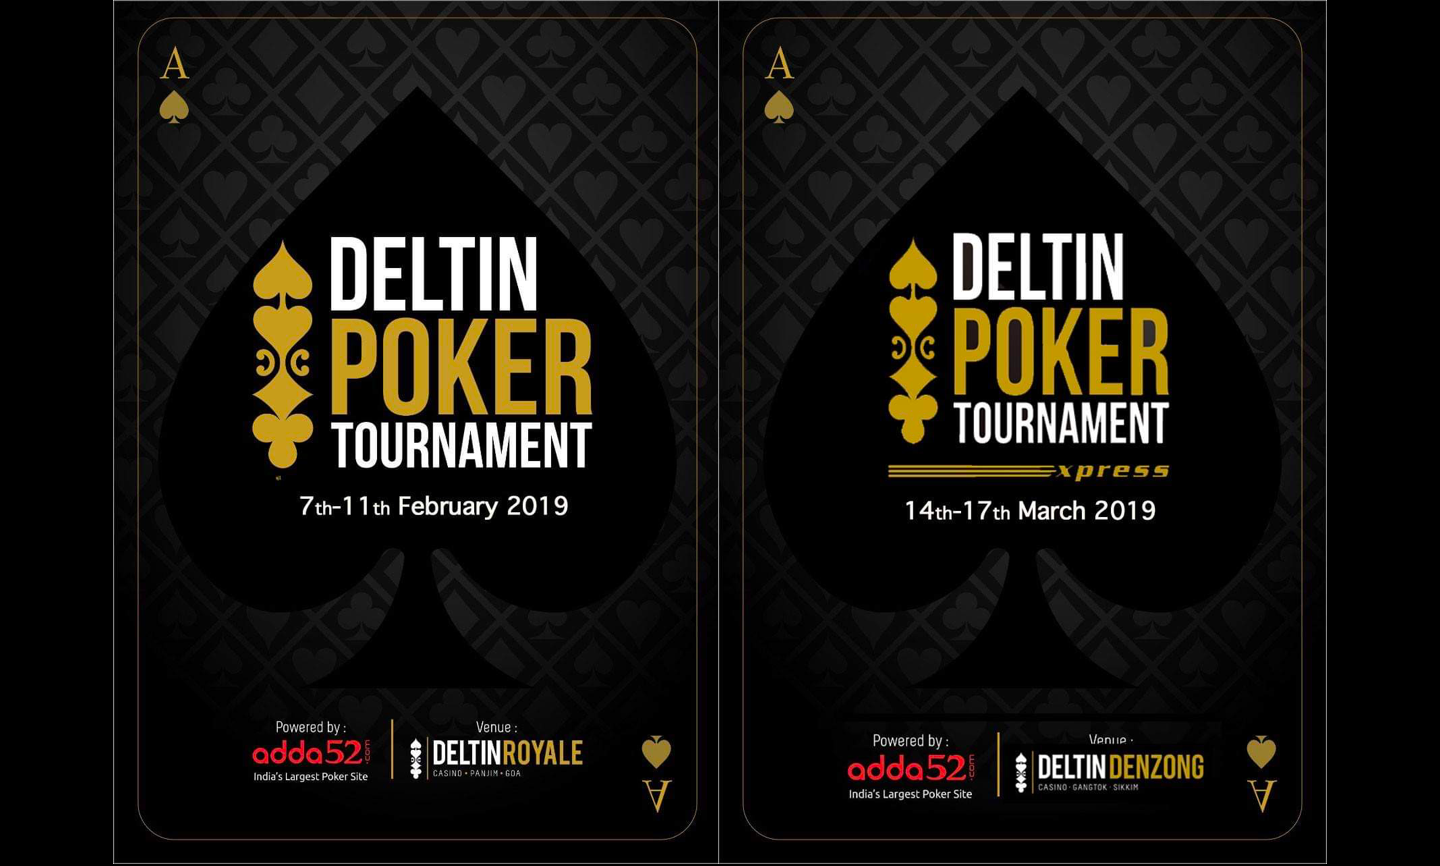 Deltin Poker Tournament Feb March 2019 Schedules Announced